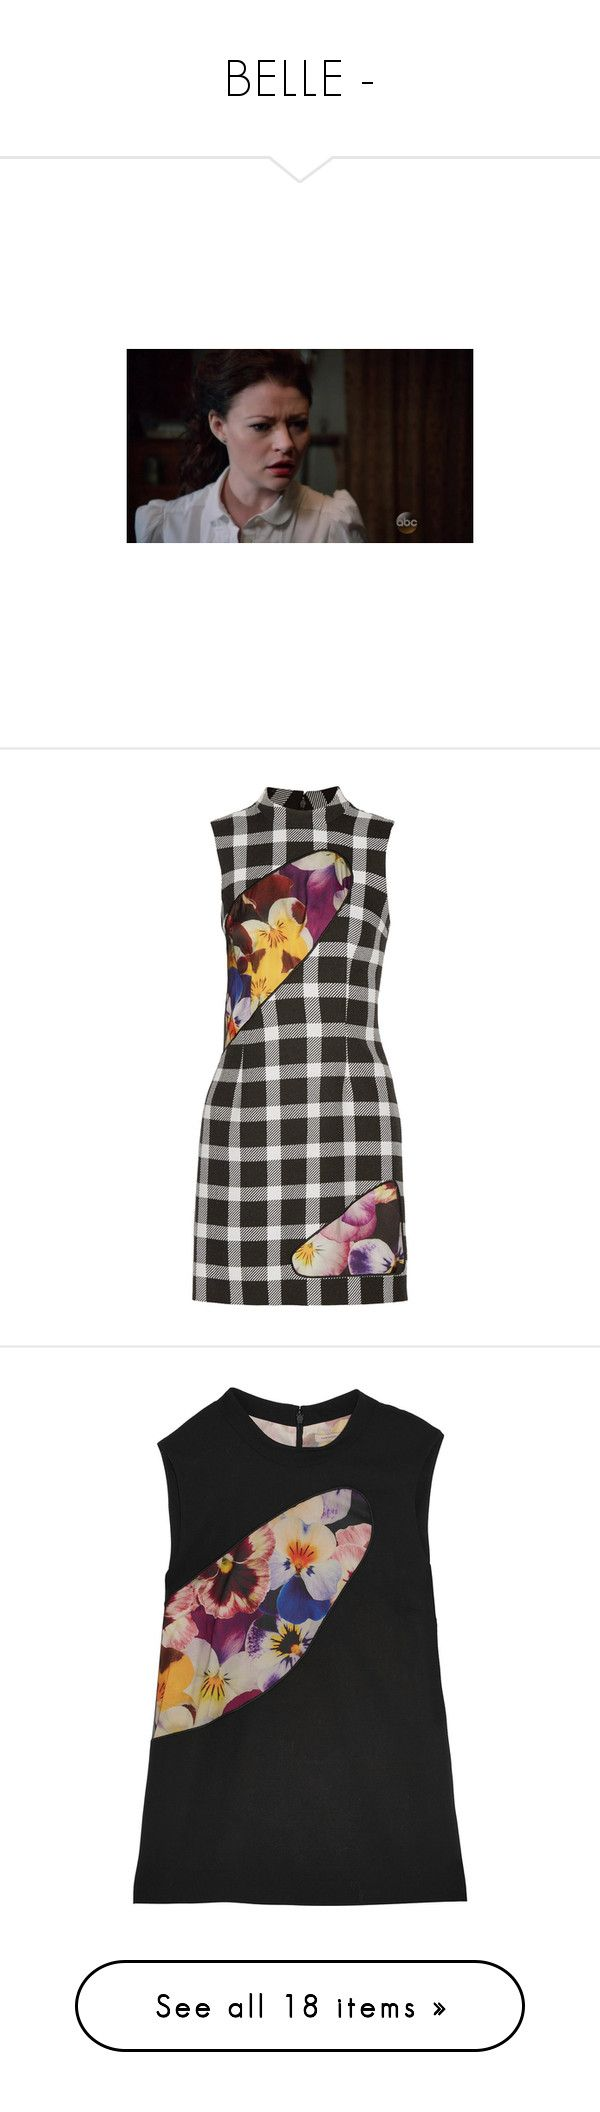 """""""BELLE -"""" by carla-turner-bastet ❤ liked on Polyvore featuring dresses, black, colorful dresses, satin mini dress, mini dress, slimming dresses, christopher kane dress, tops, sheer top and wool tops"""